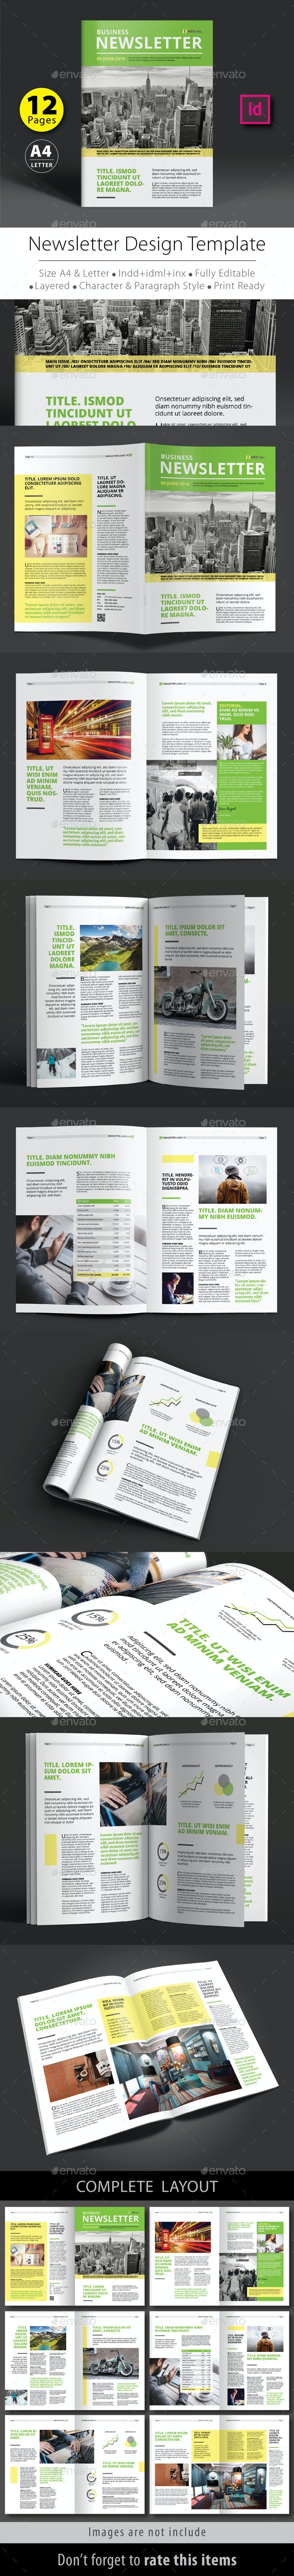 12 Pages Newsletter Design Template V.2 - Newsletters Print Templates